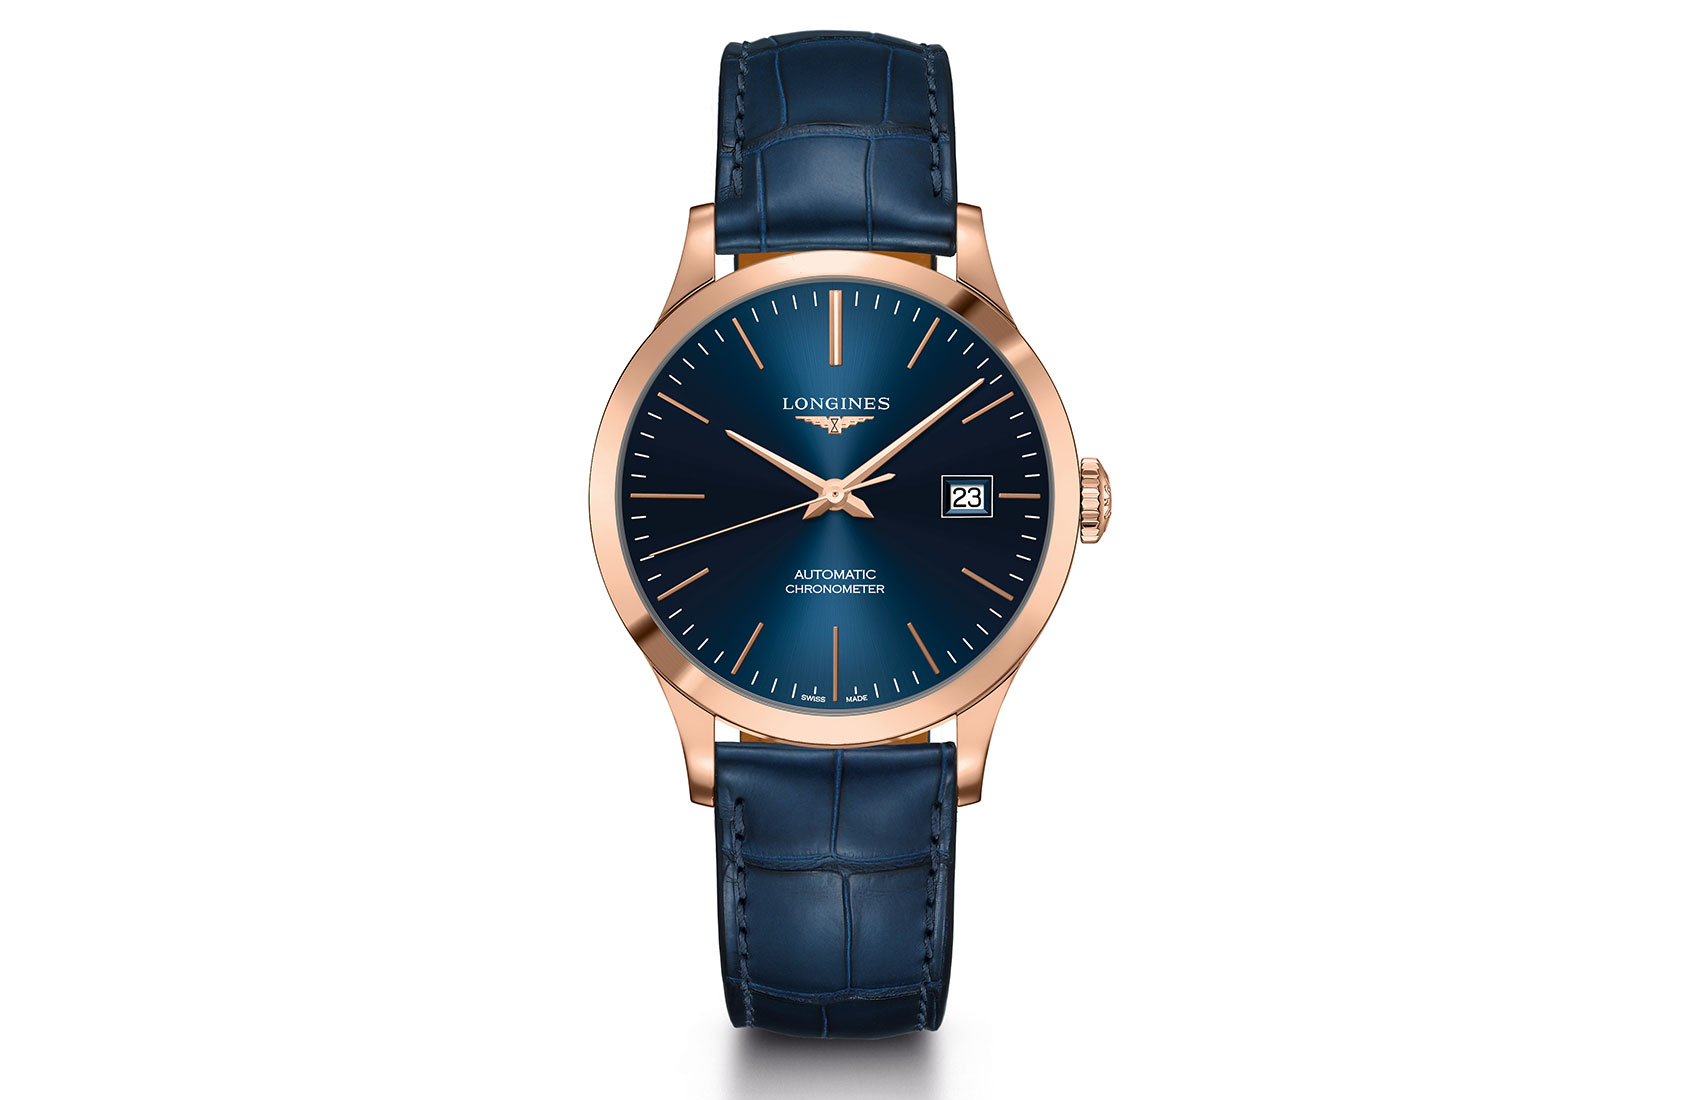 INTRODUCING: The COSC-Certified Longines Record Collection gets a luxe extension